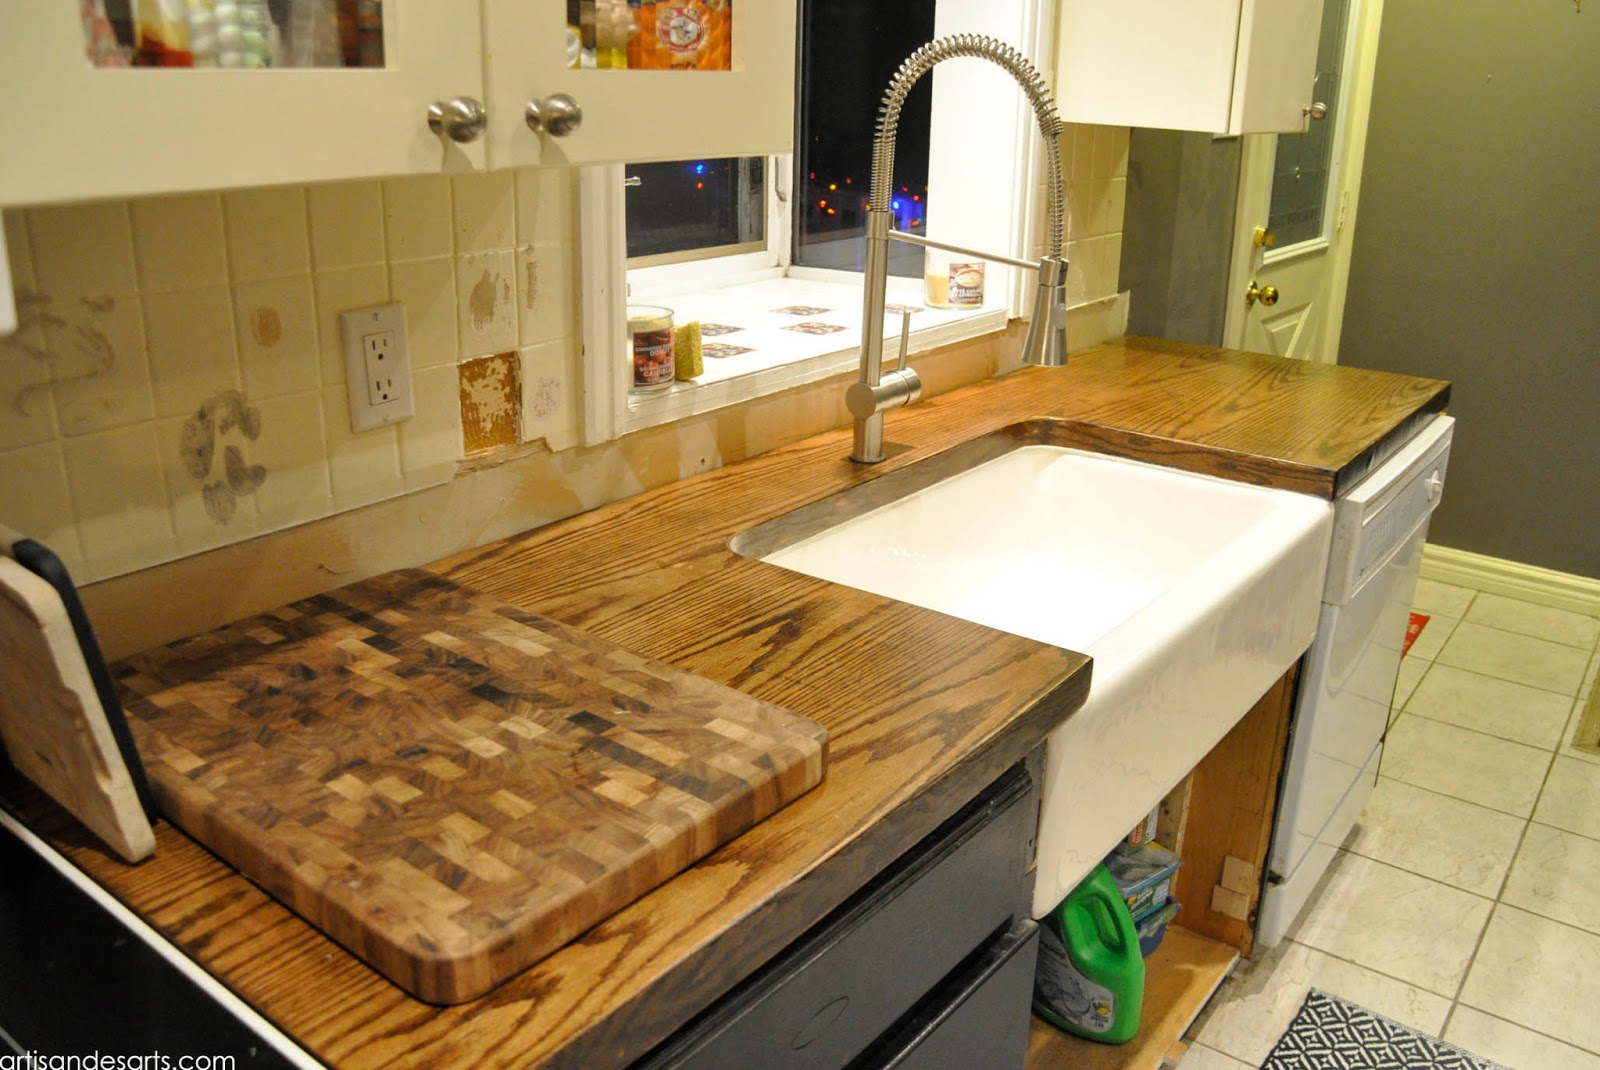 Best Wood For Butcher Block Counters: Artisan Des Arts: DIY Wood Door Butcher Block Countertops